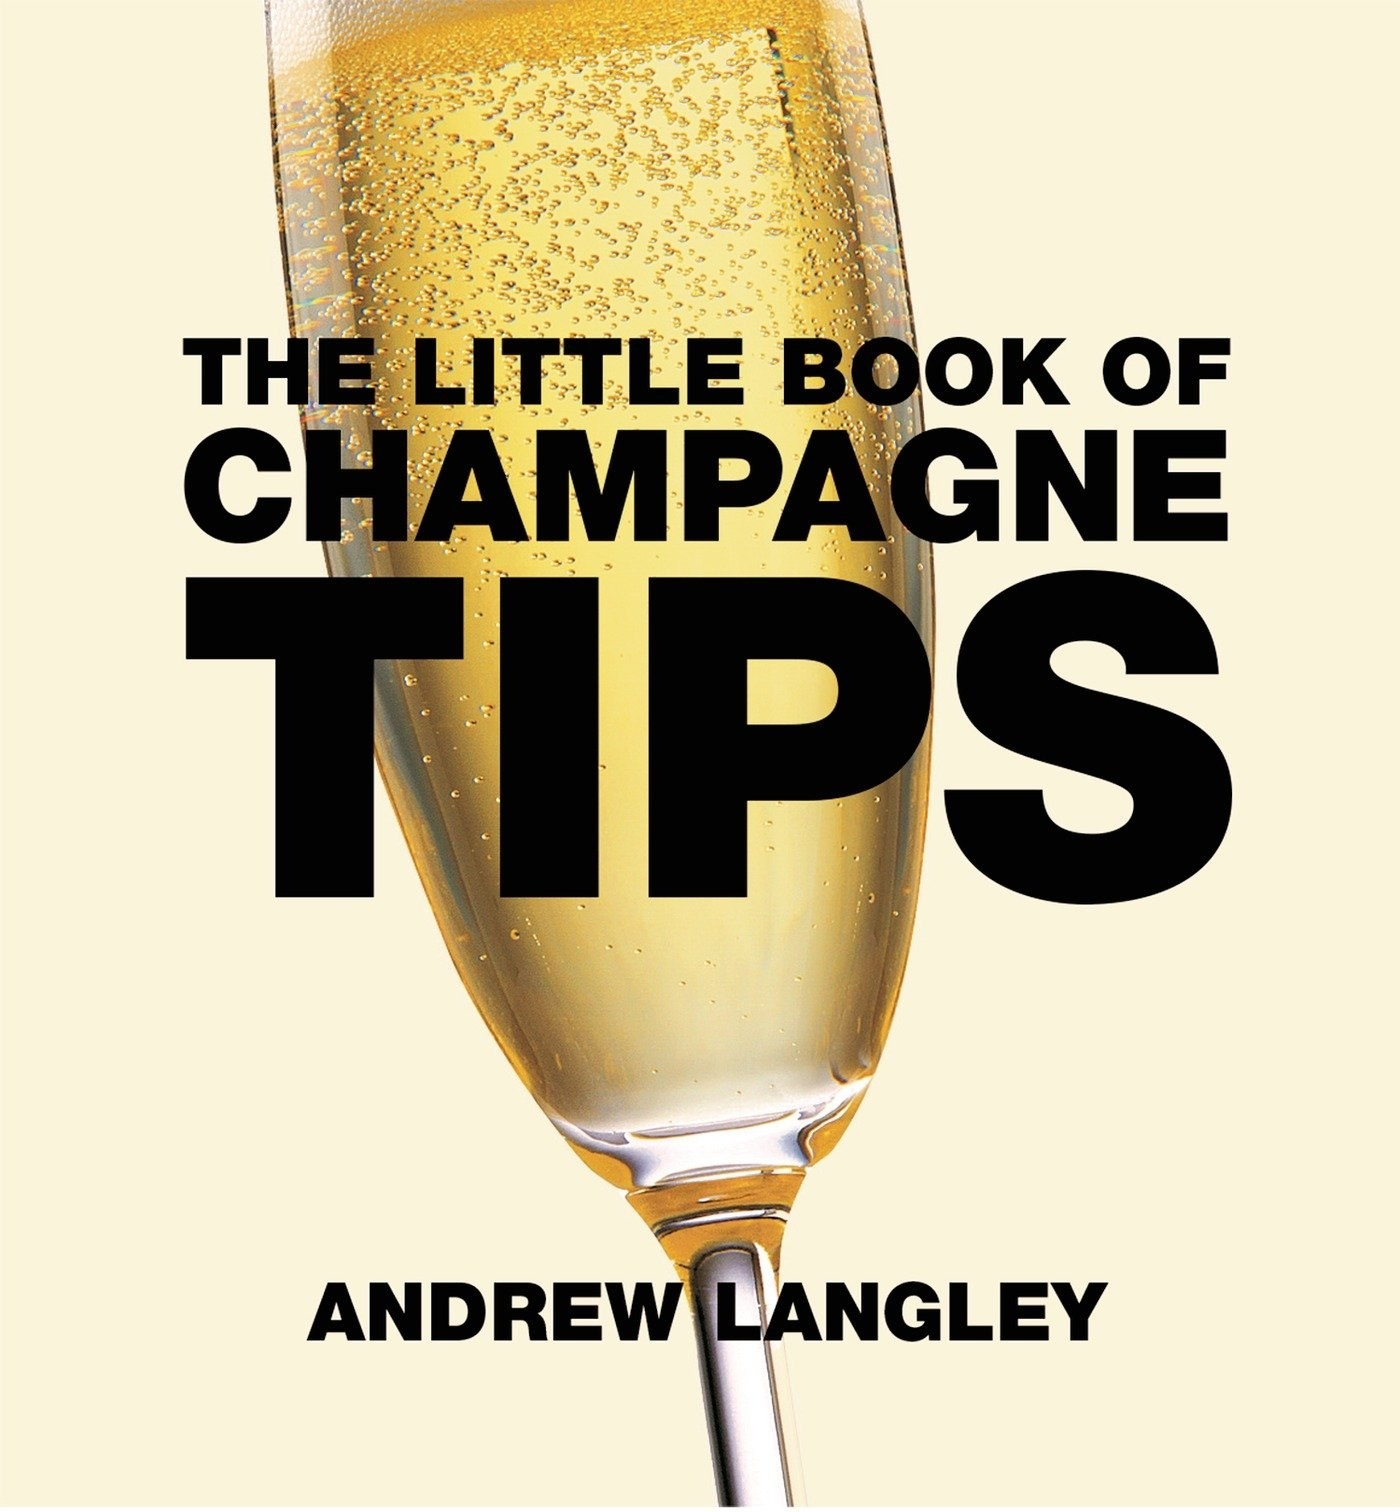 The cover of the book by Andrew Langley